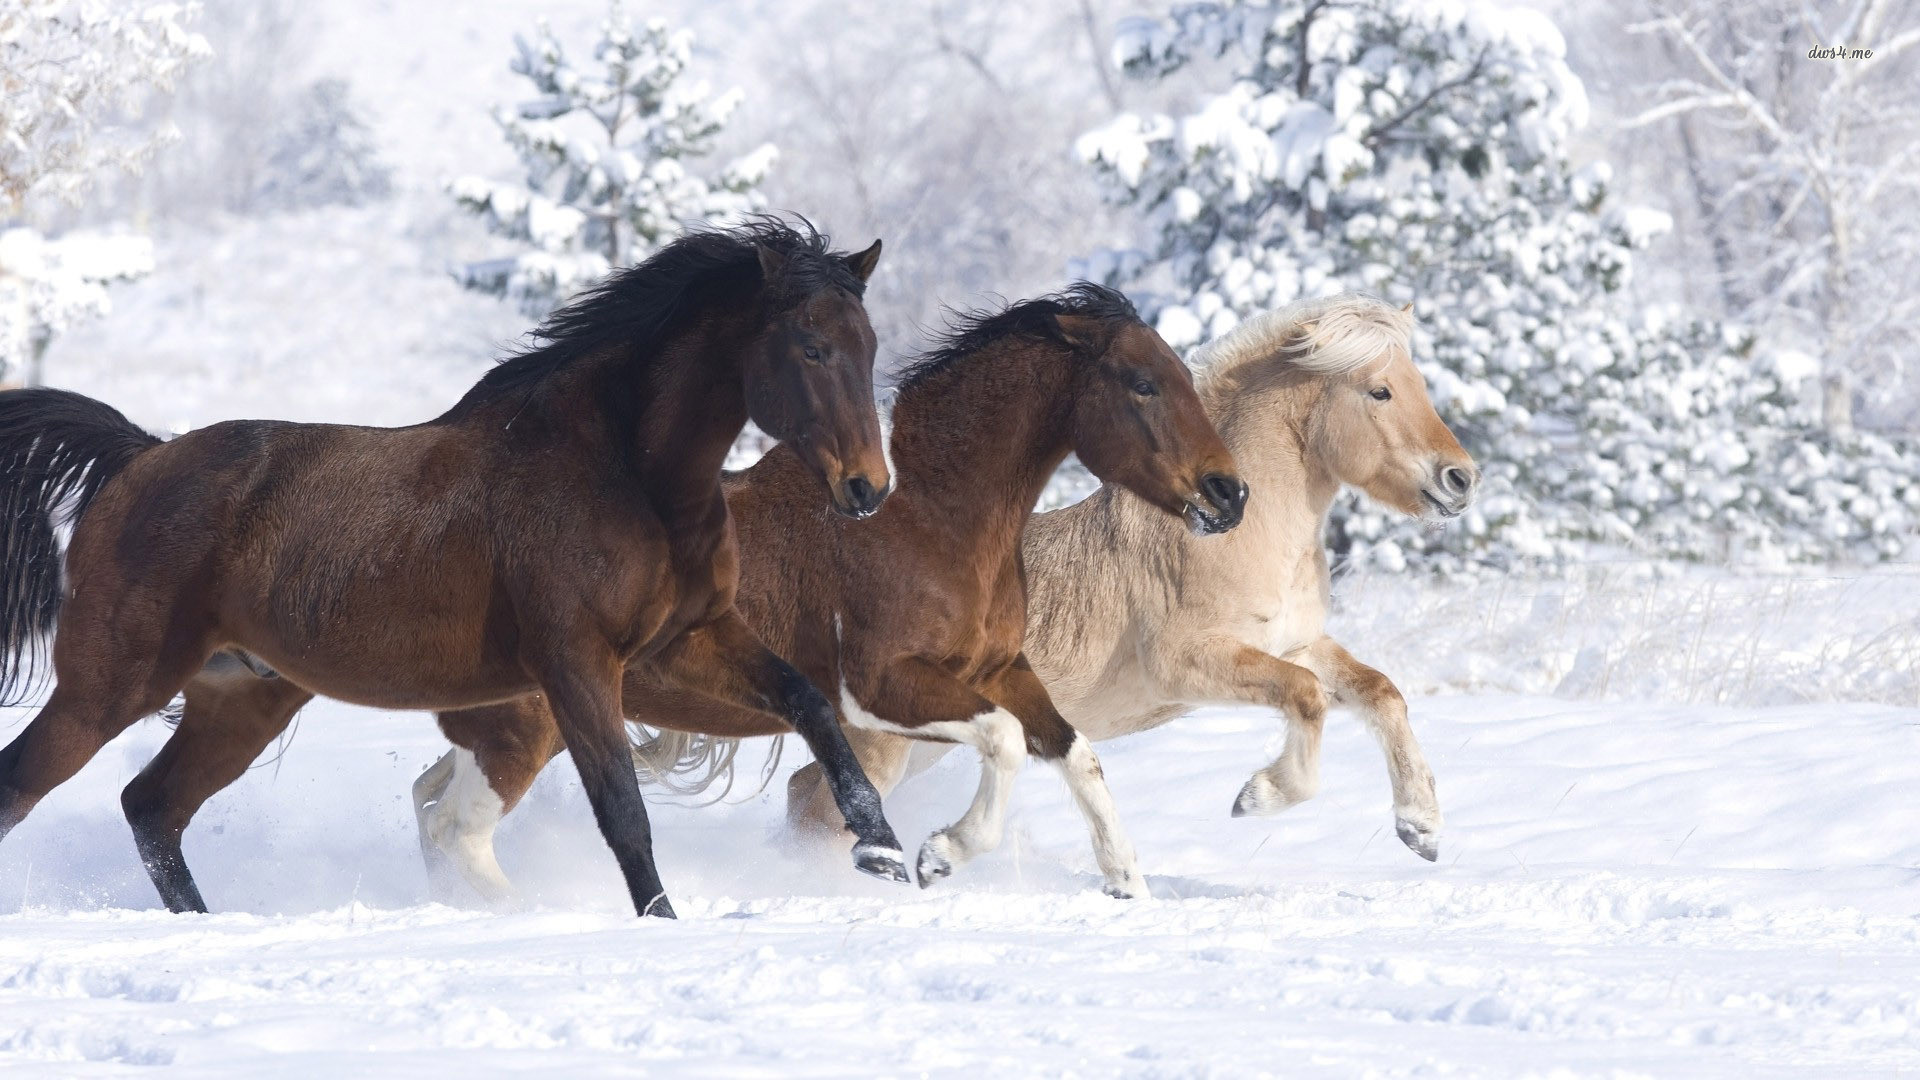 Res: 1920x1080, ... Horses running in the snow wallpaper  ...